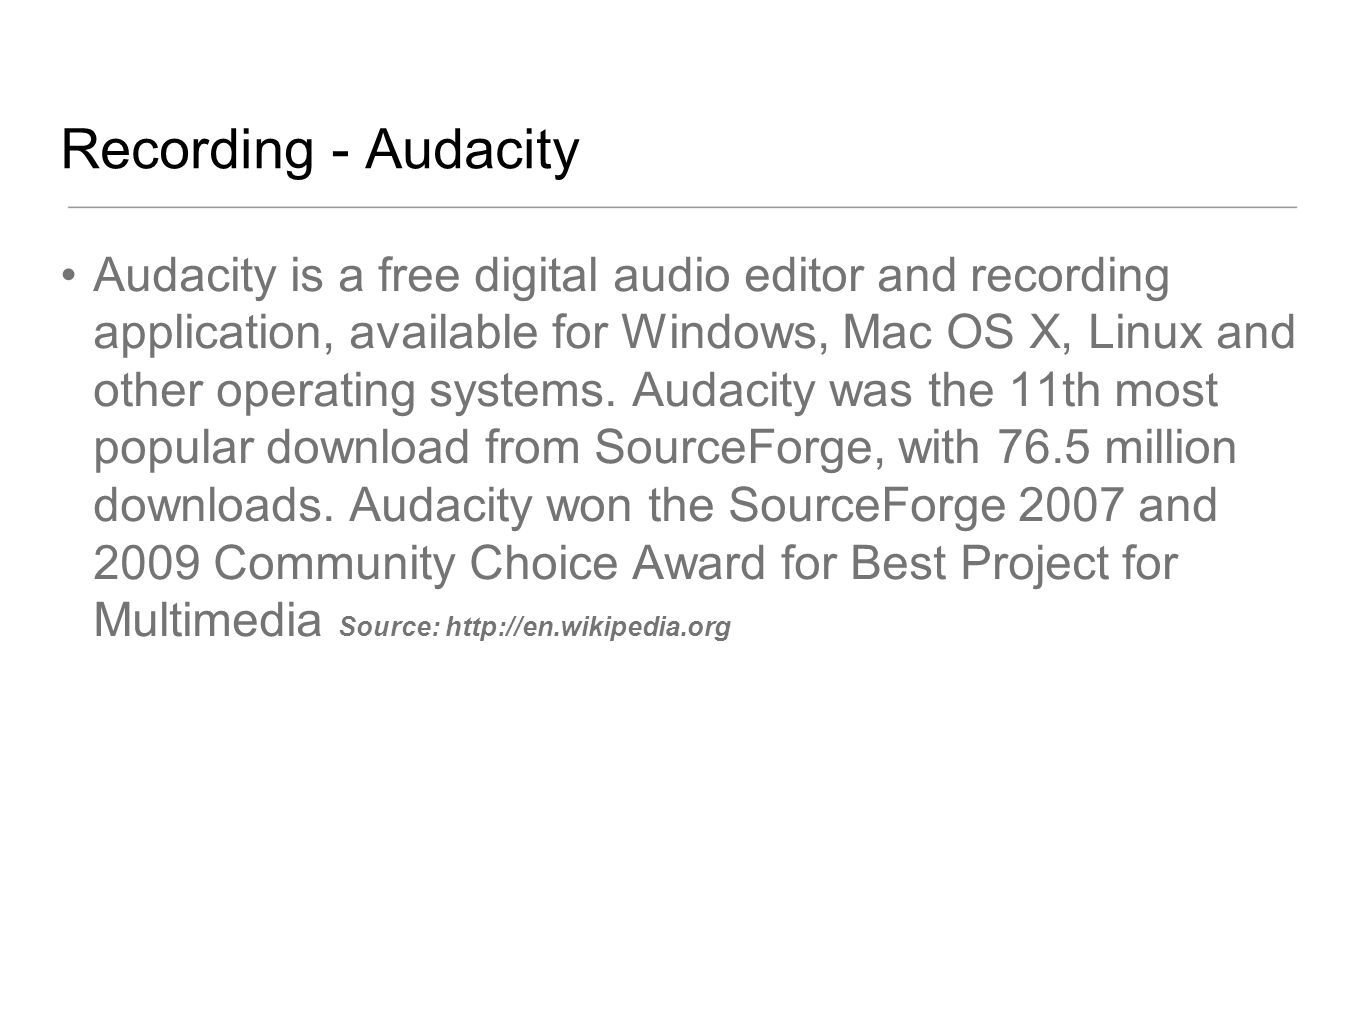 Recording - Audacity Audacity is a free digital audio editor and recording application, available for Windows, Mac OS X, Linux and other operating sys